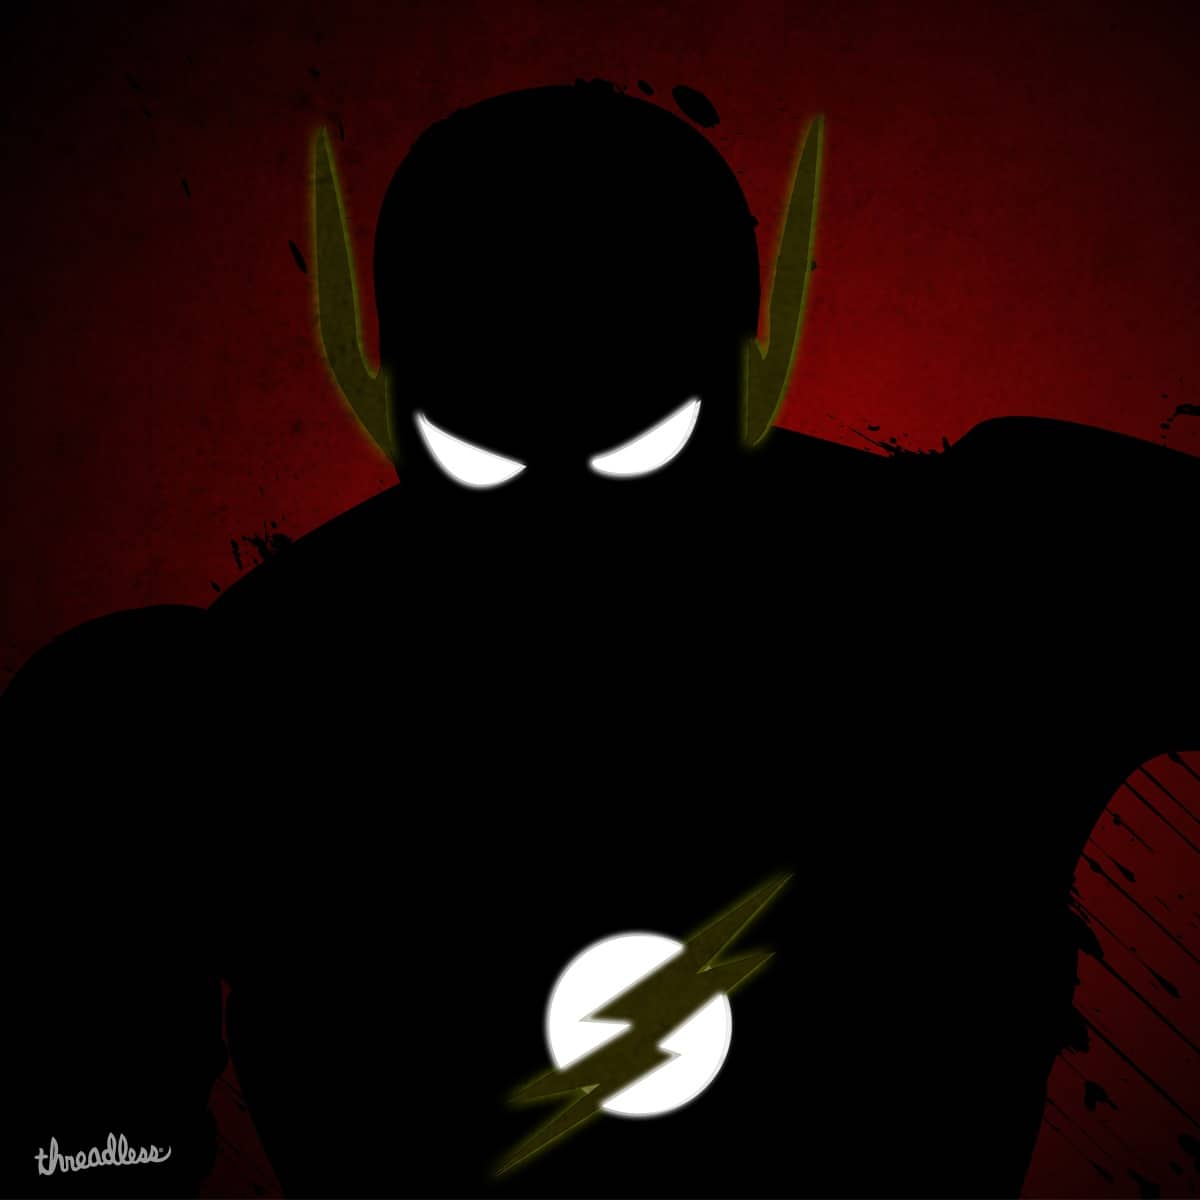 The Flash by Ryanh1982 on Threadless